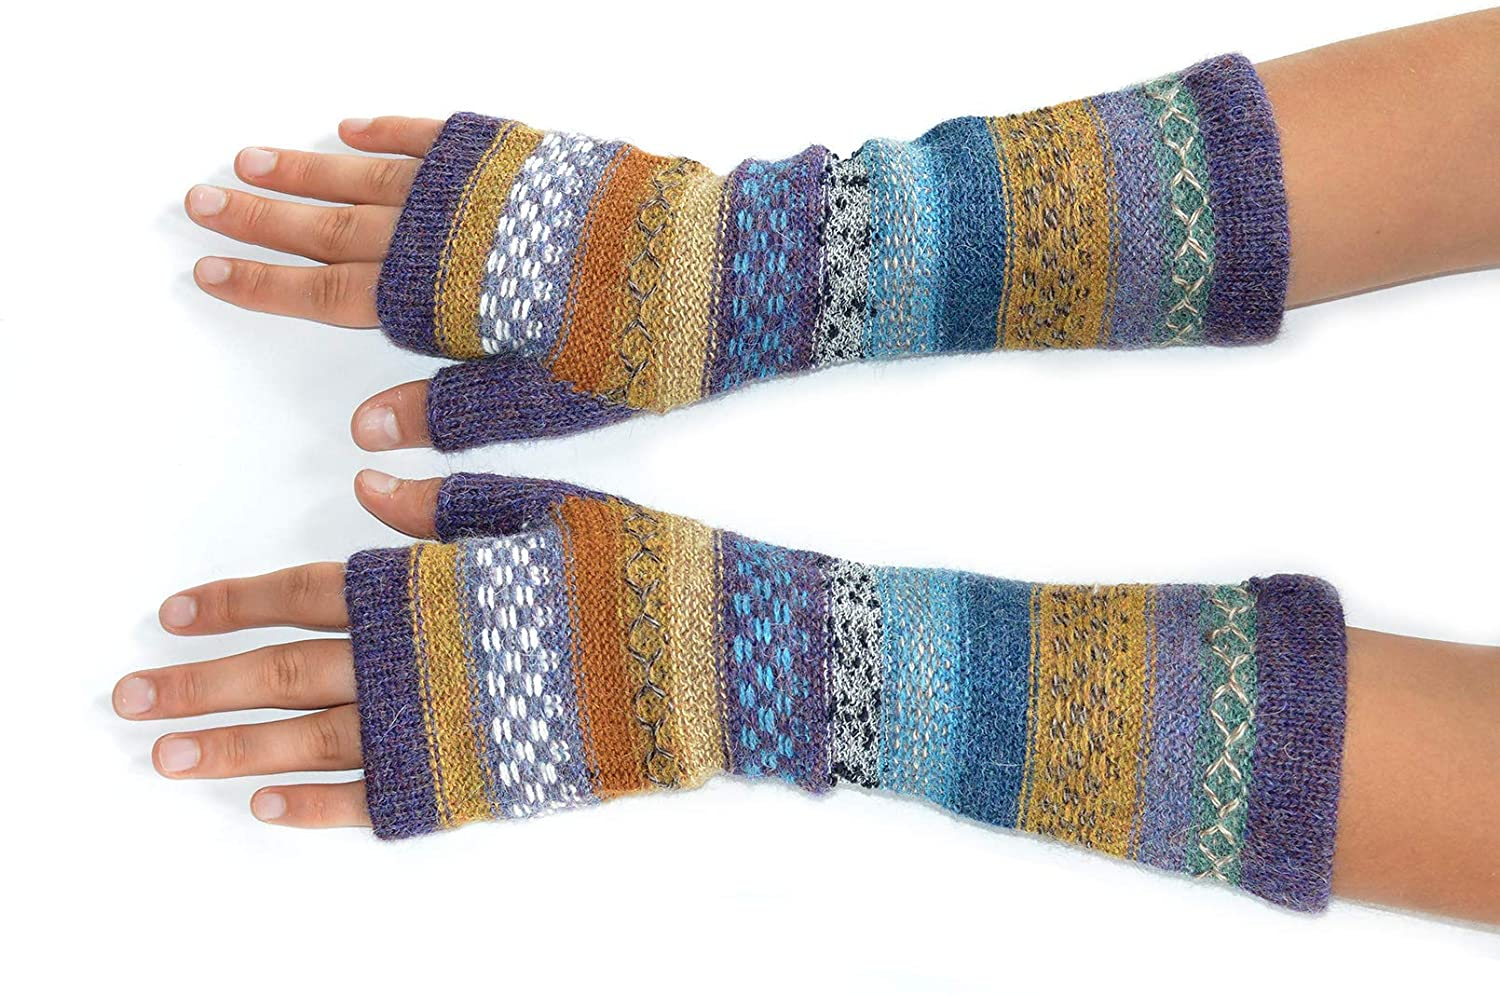 Invisible World Women's Alpaca Wool Fingerless Gloves Texting Typing